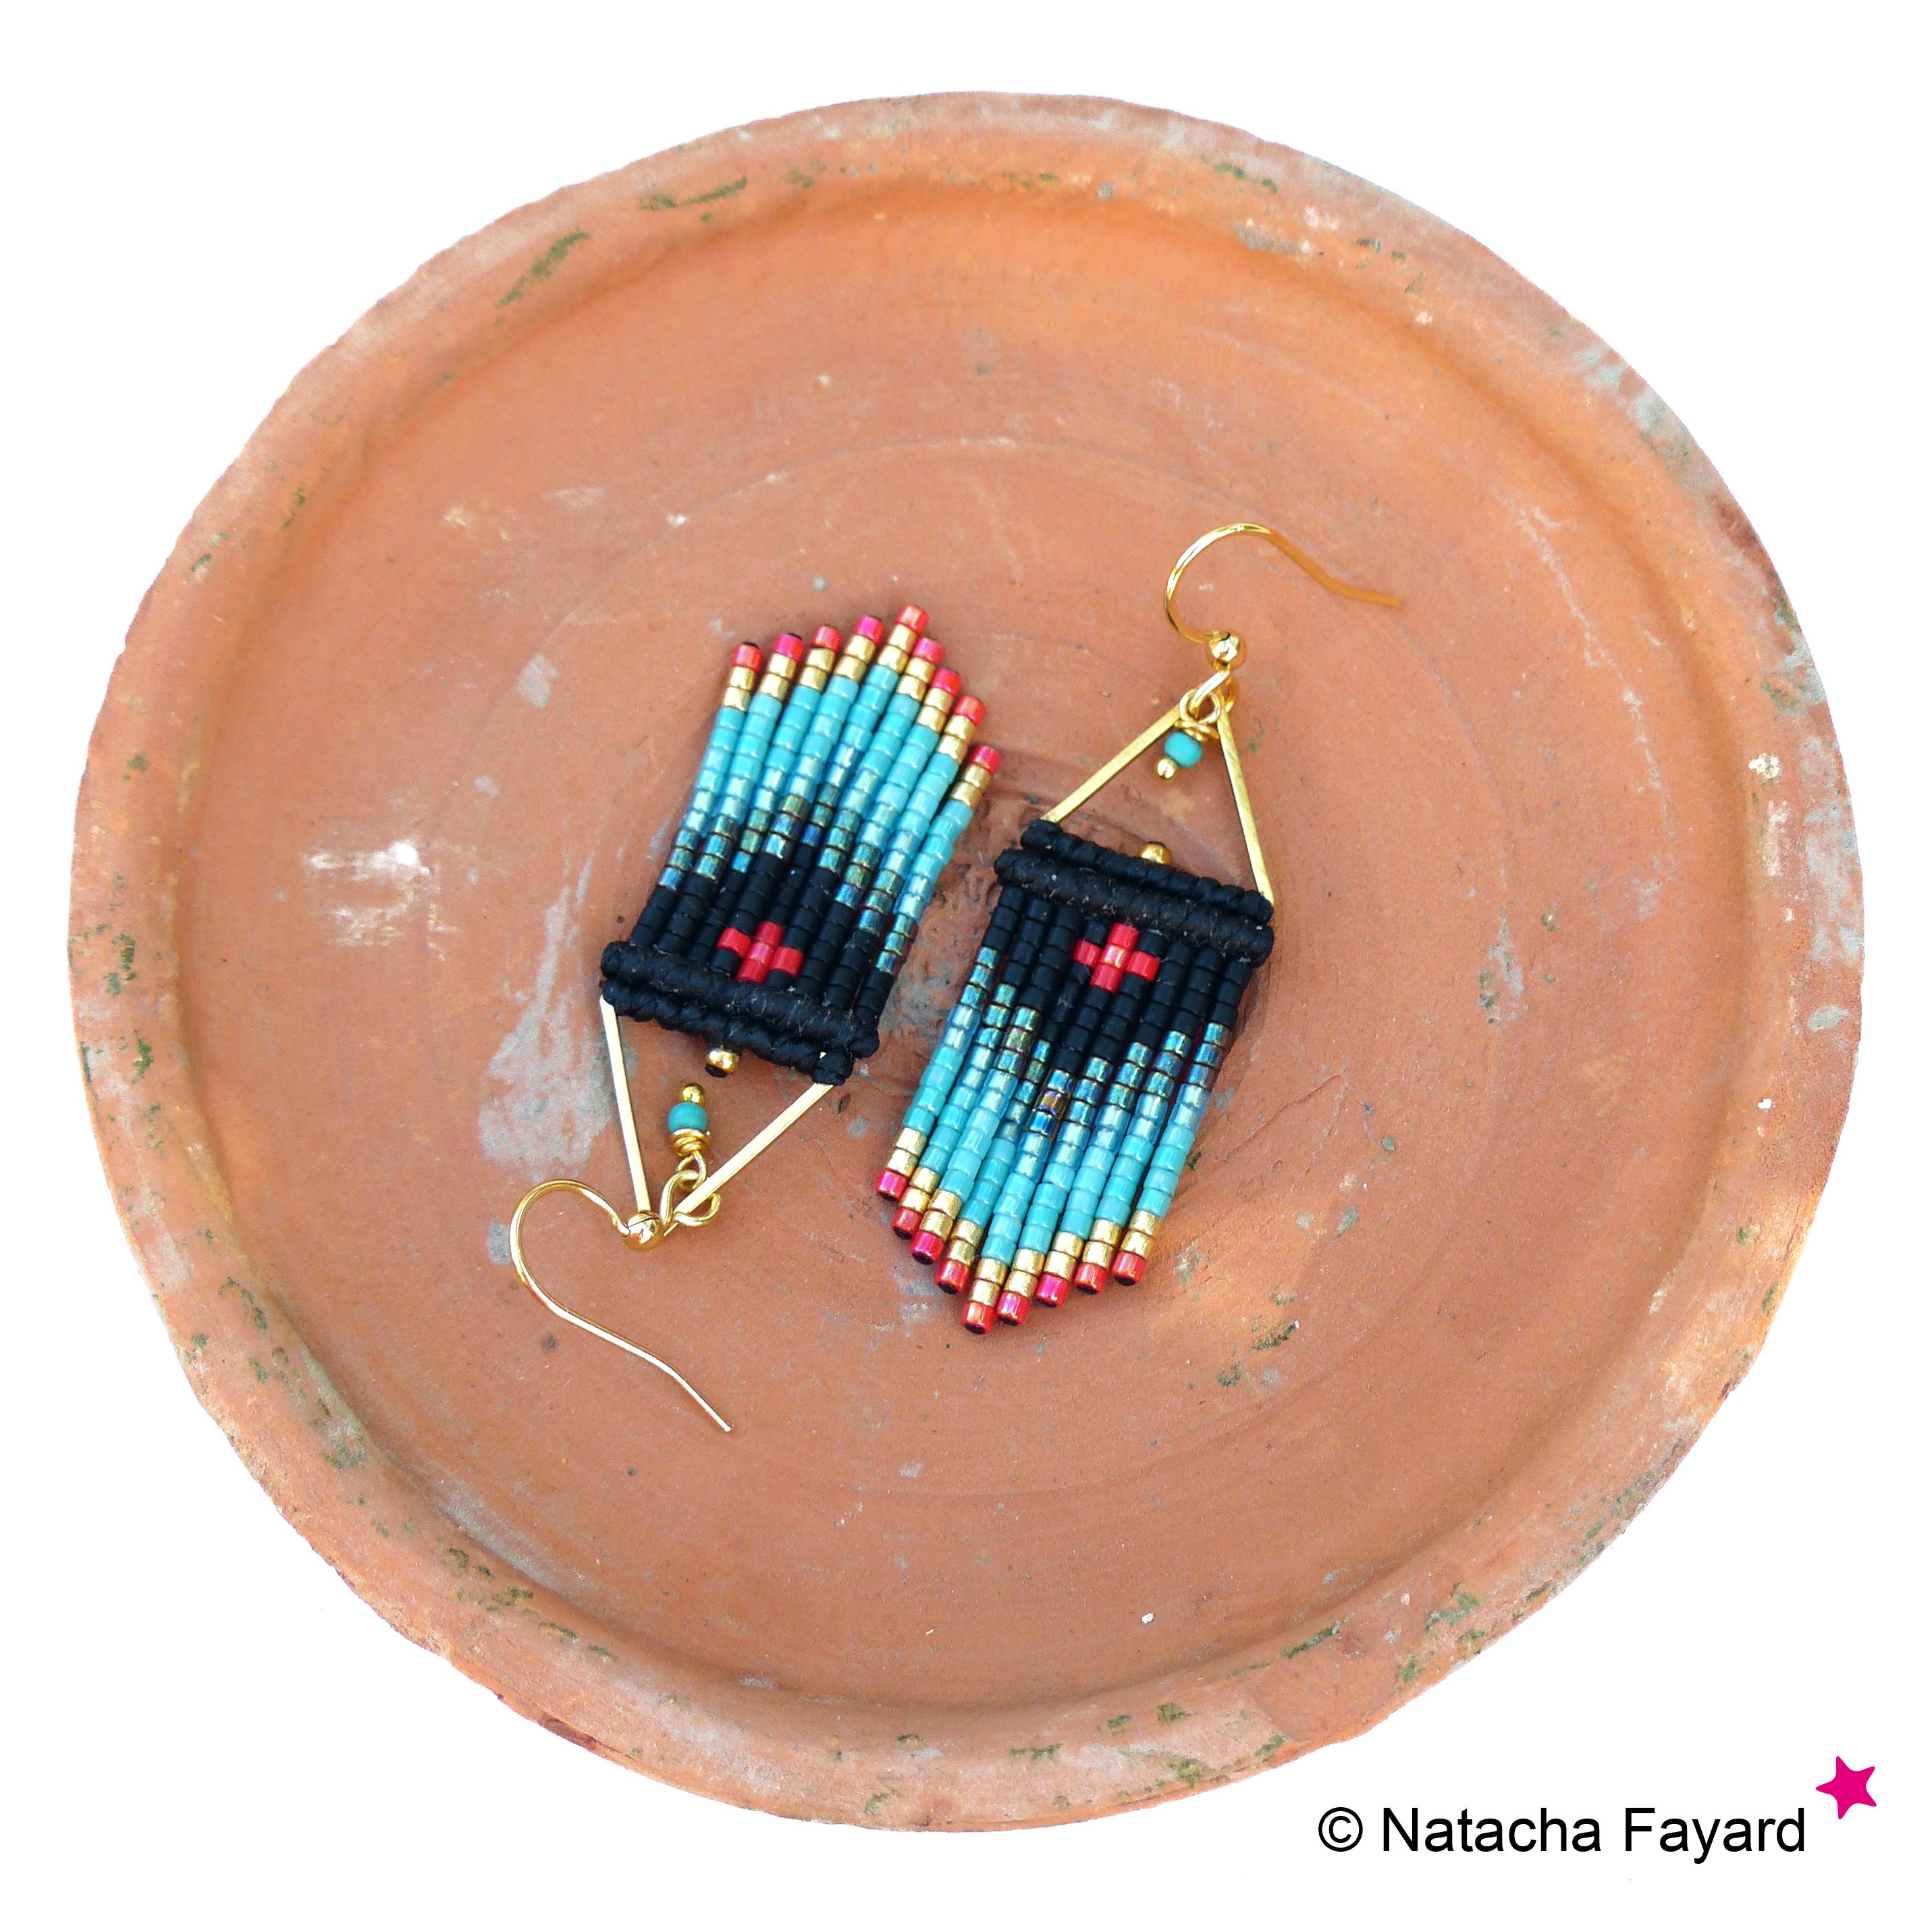 Chevron dangle earrings, made of macrame and miyuki delica seed beads / Black turquoise gold and red / Graphic patterns. © Natacha Fayard #earrings #dangle #macrame #micromacrame #chevron #graphic #jewelry #miyuki #delica #black #gold #turquoise #red #etsy